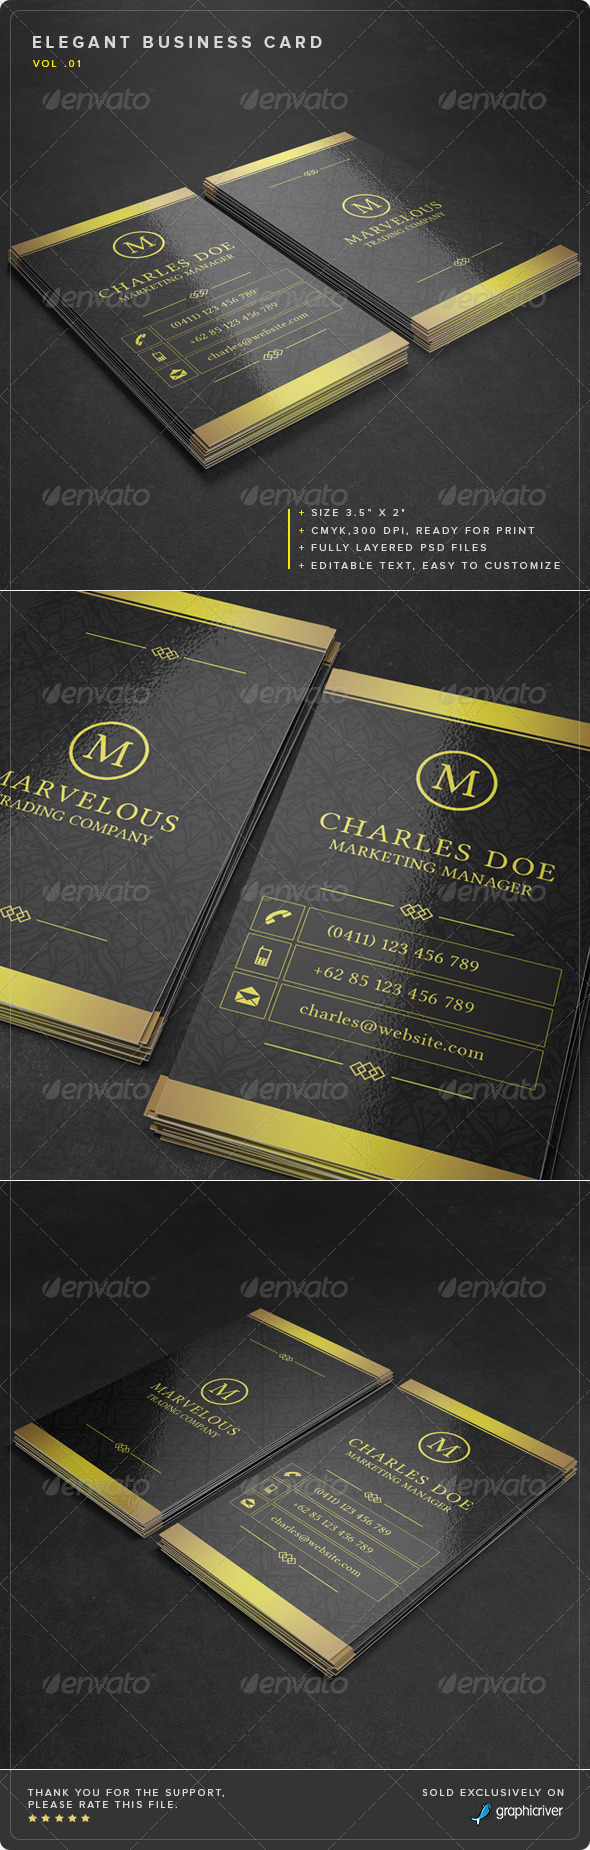 GraphicRiver Elegant Business Card Vol 01 8139075